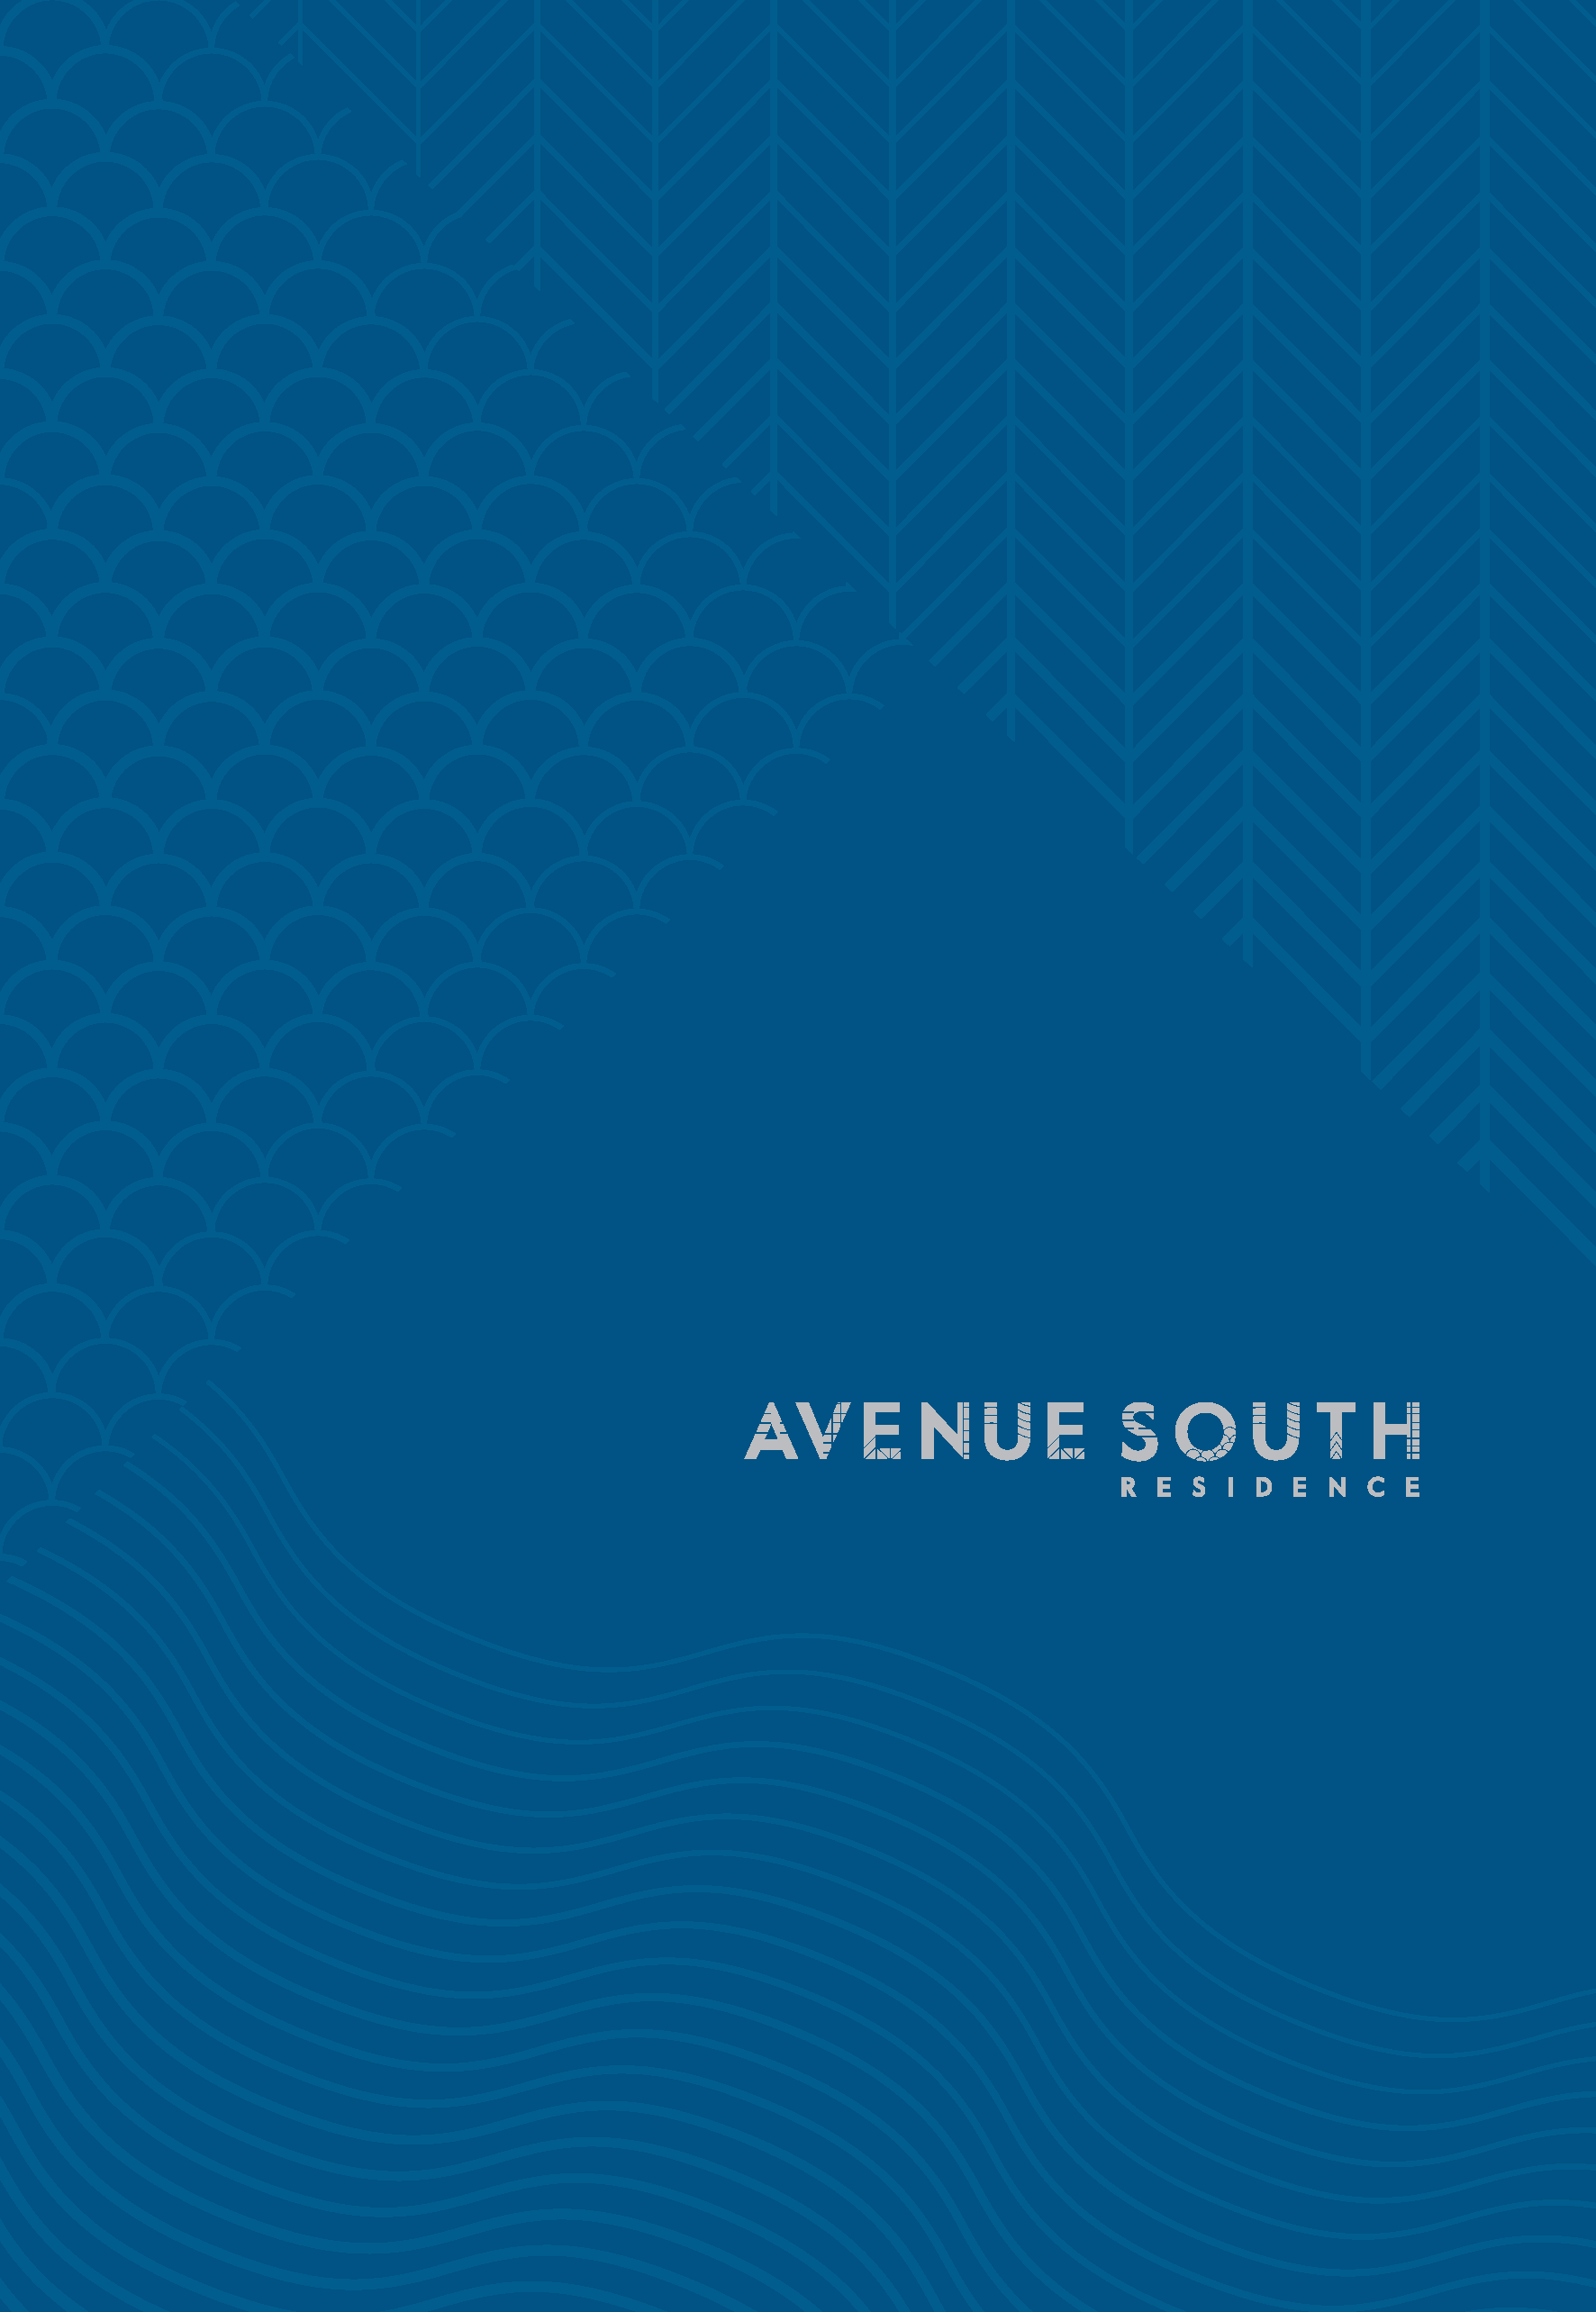 avenue-south-residence-ebrochure-silat-road-condo-cover-page-UOL-singapore